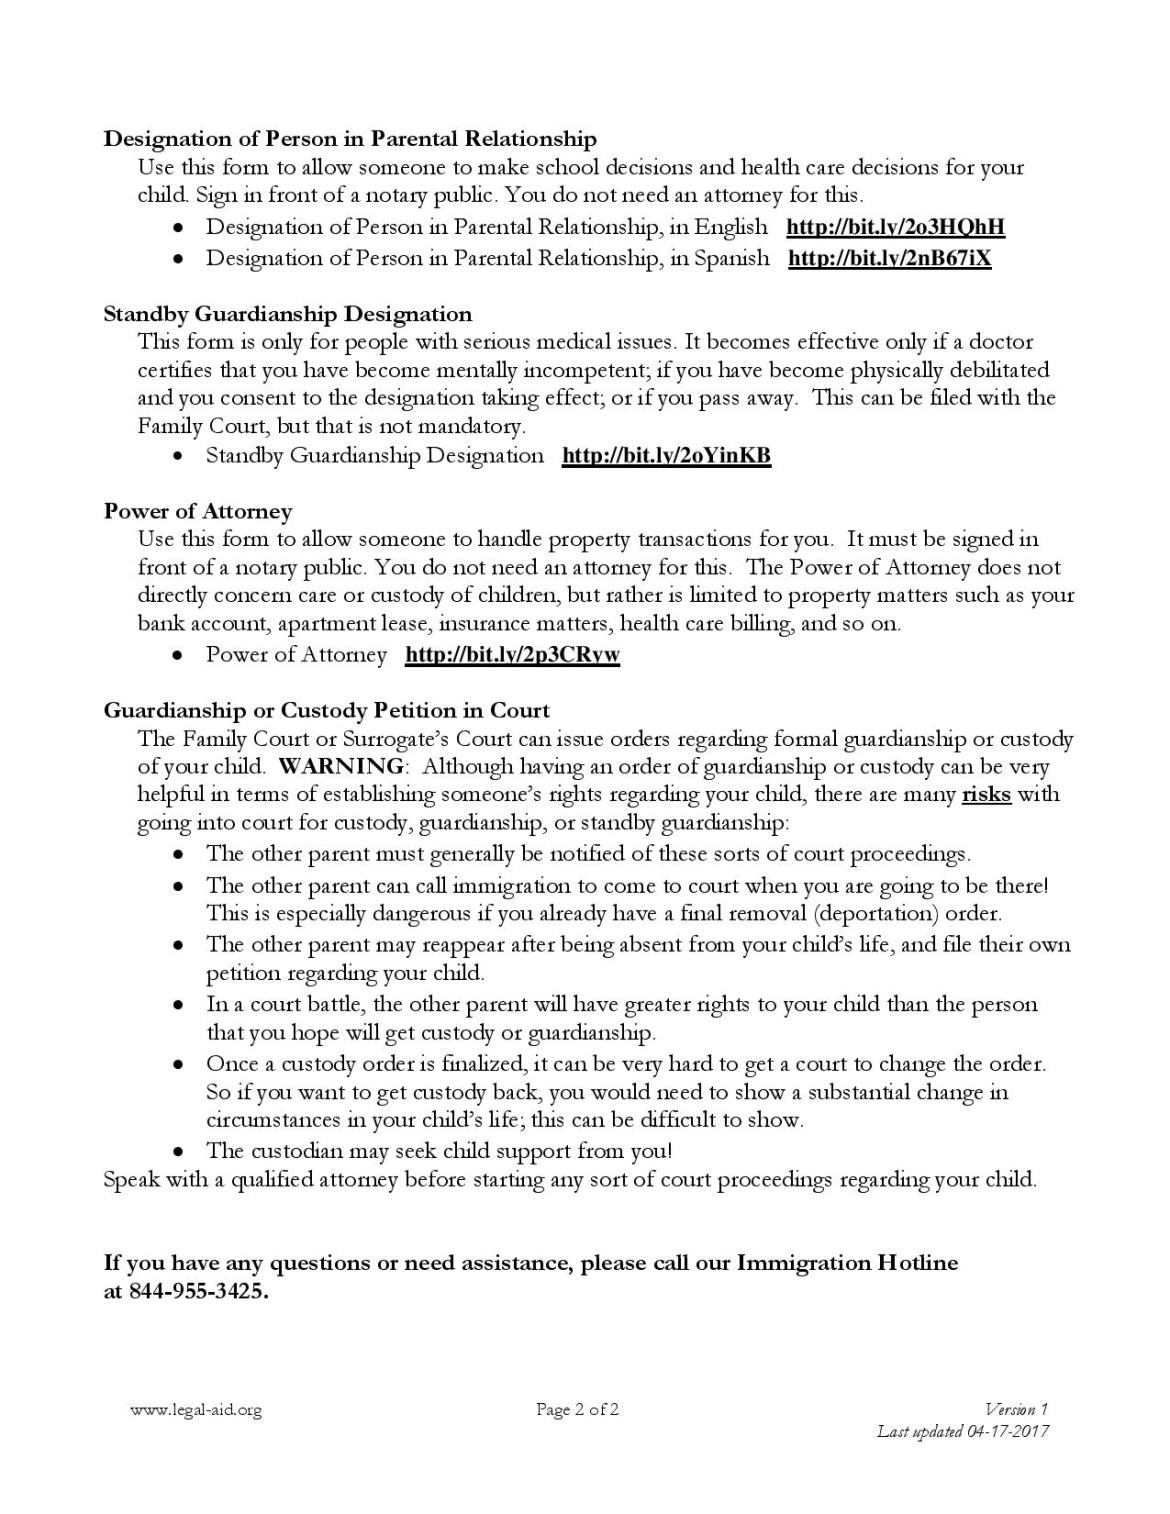 Advance Planning for Non-Citizen Parents-page-002